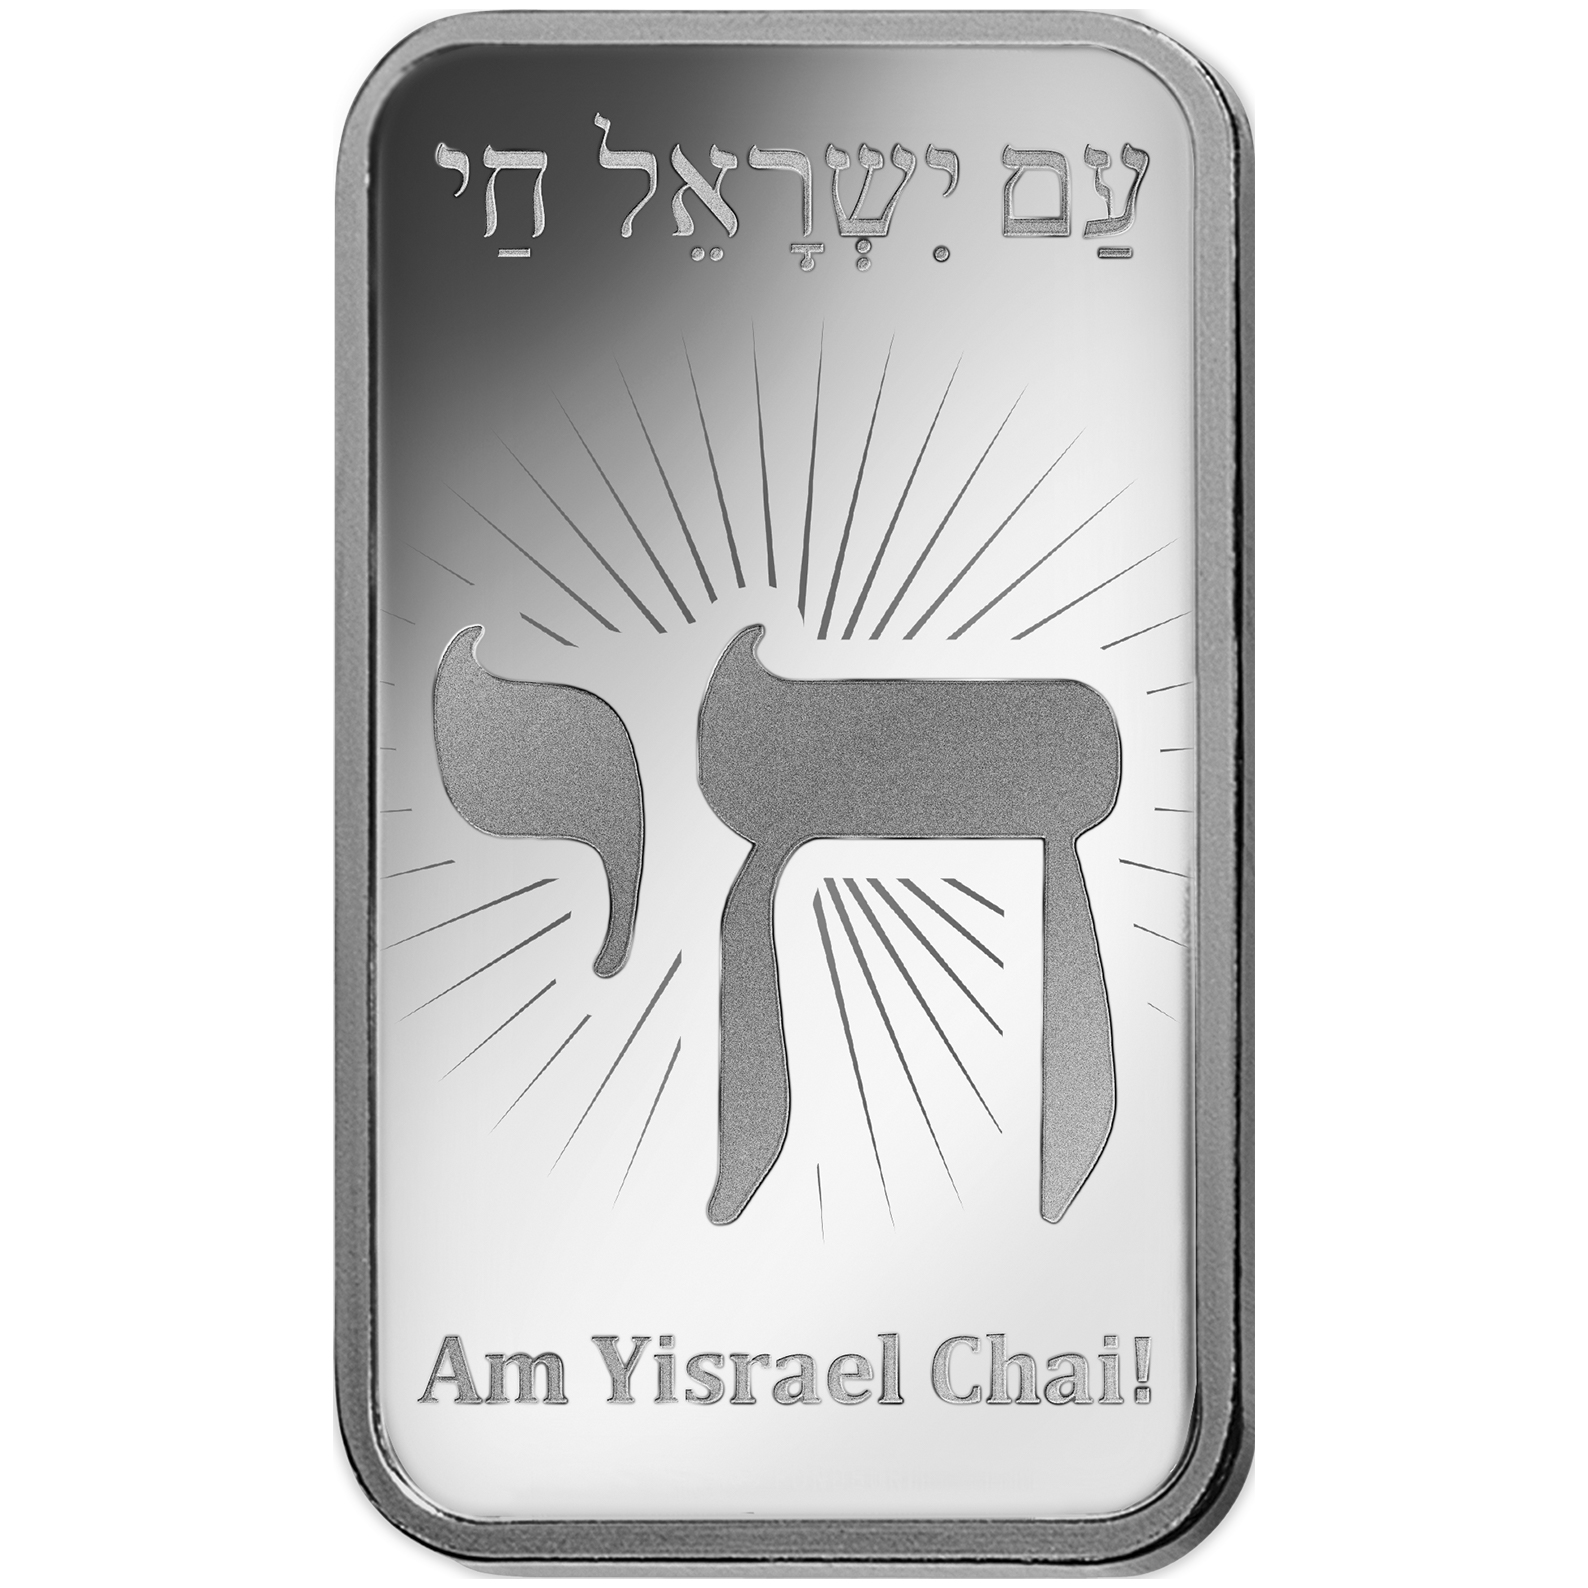 1 oz Silver Bar - PAMP Suisse Am Yisrael Chai